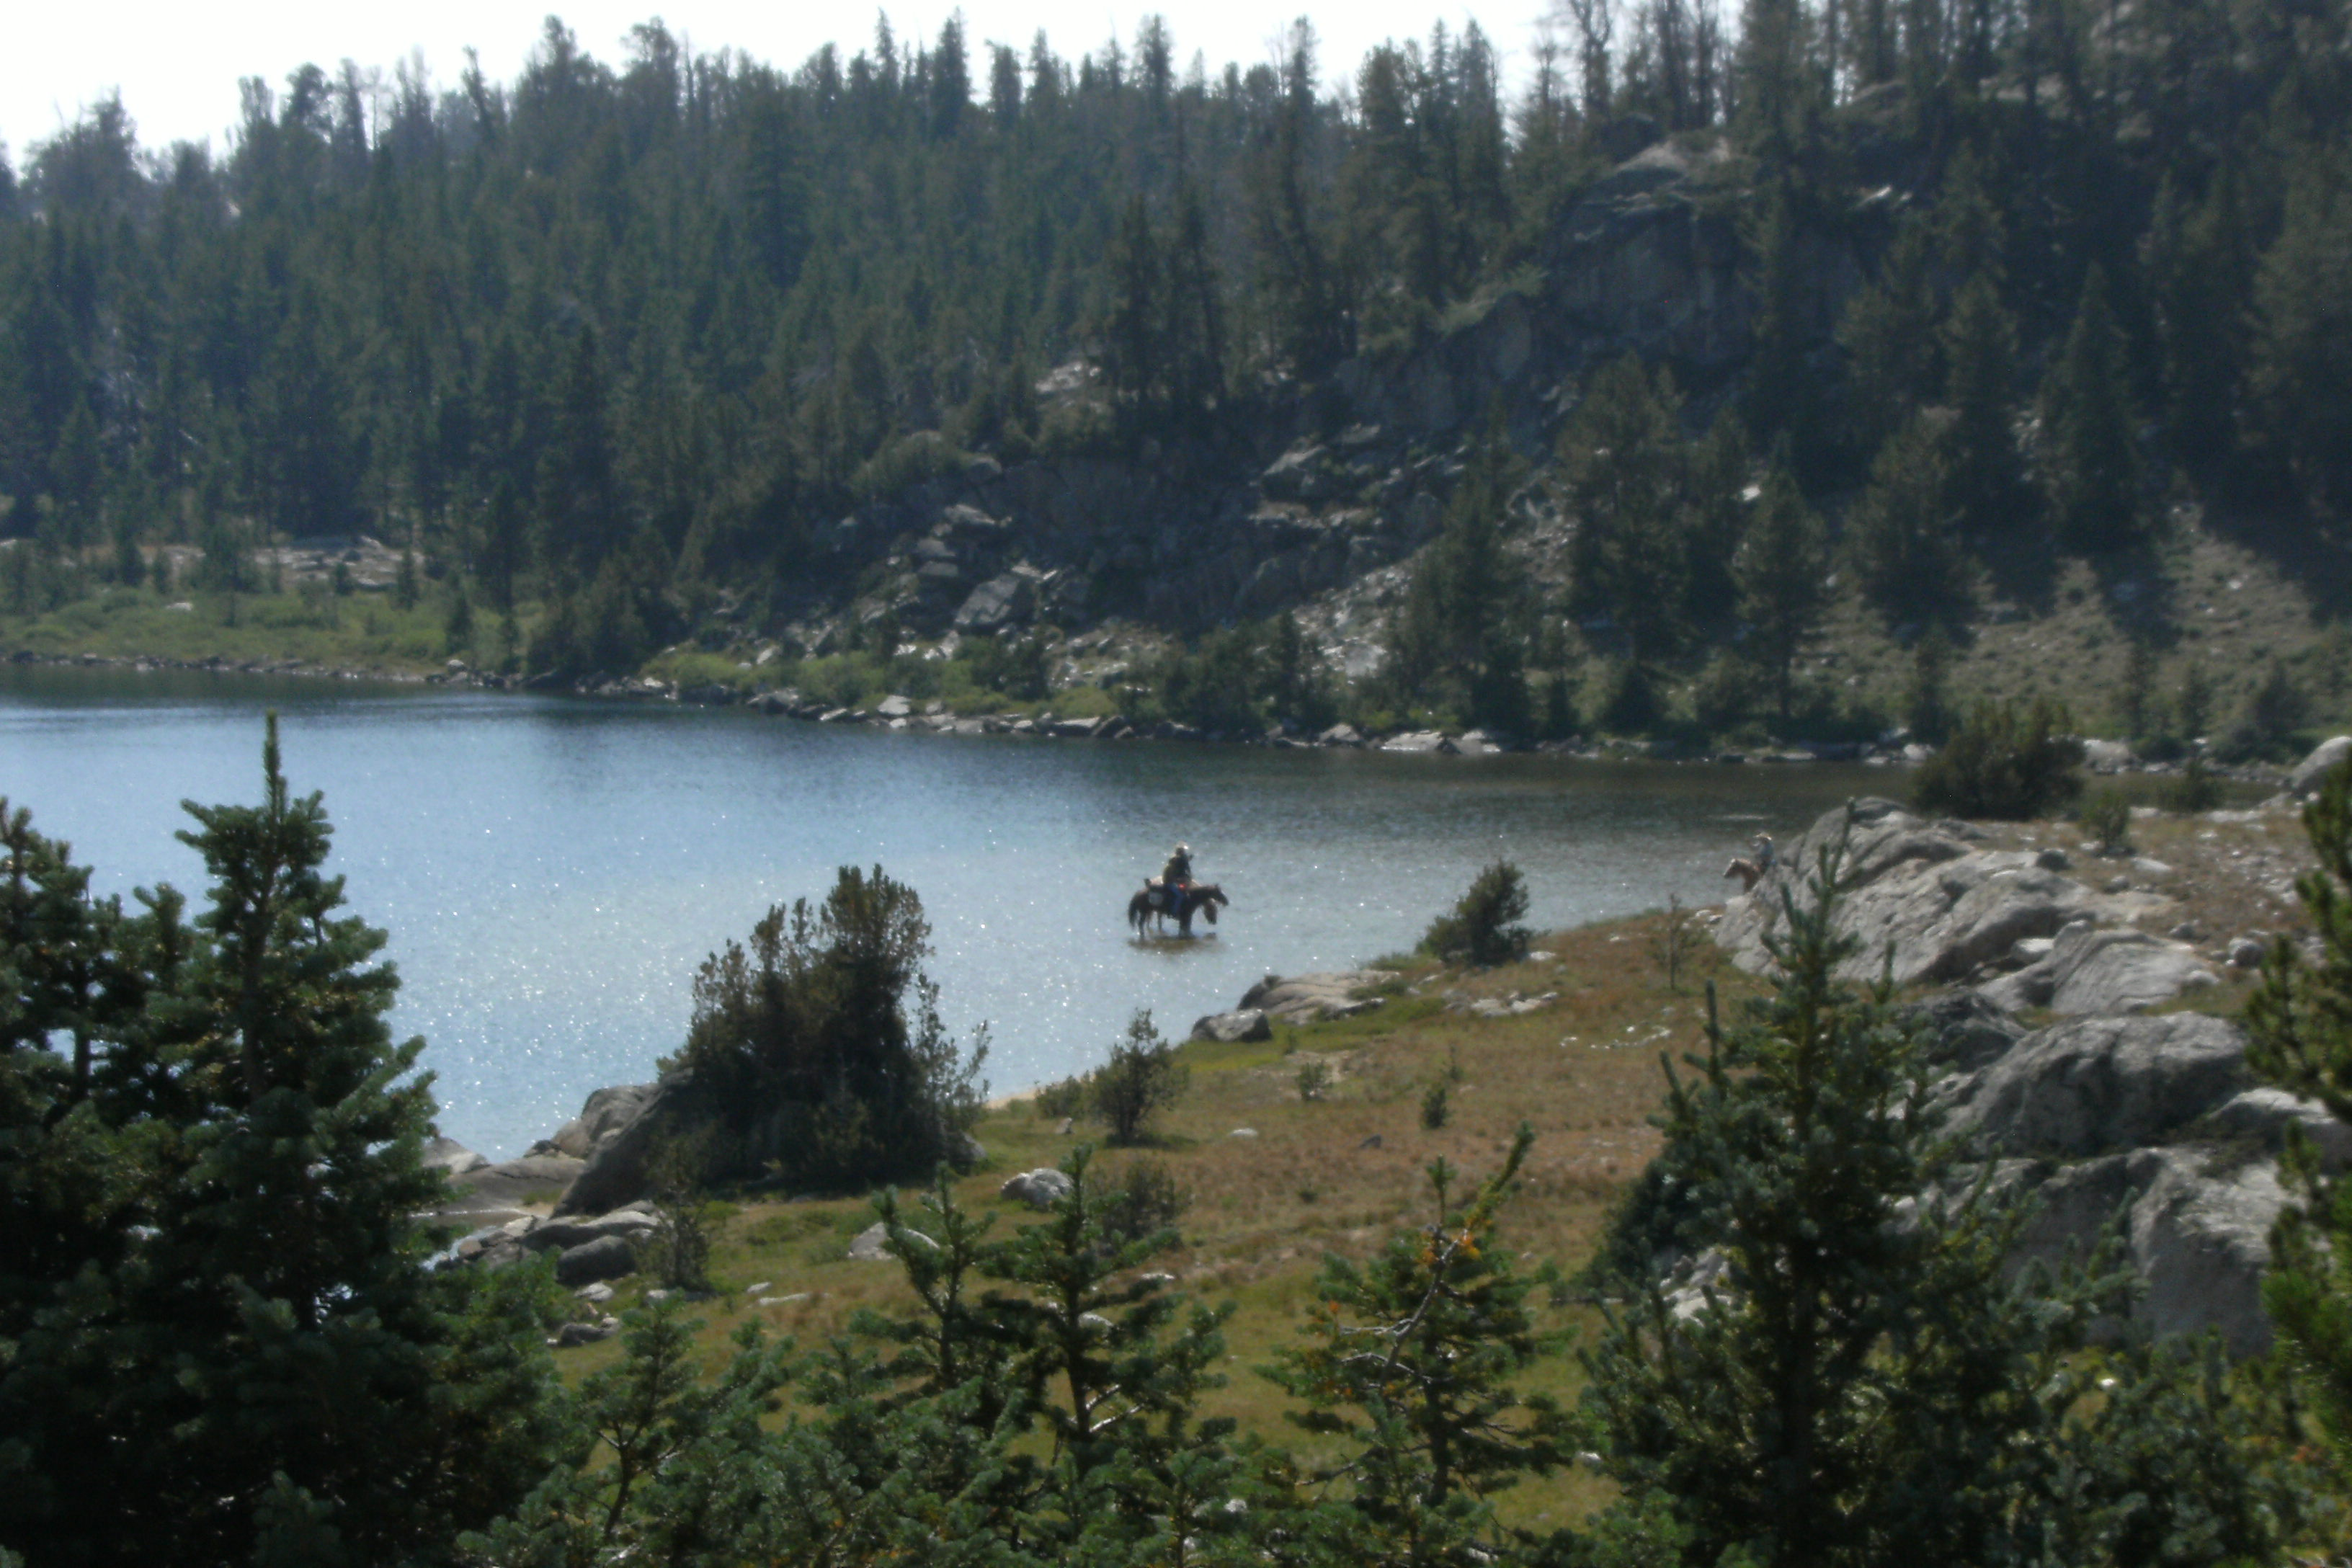 From There I Took A Day Hike To Middle Fork Lake, An Eastwest Drainage  With Access To The Divide Passes Because I Was Anxious To Camp In Alpine  Country,